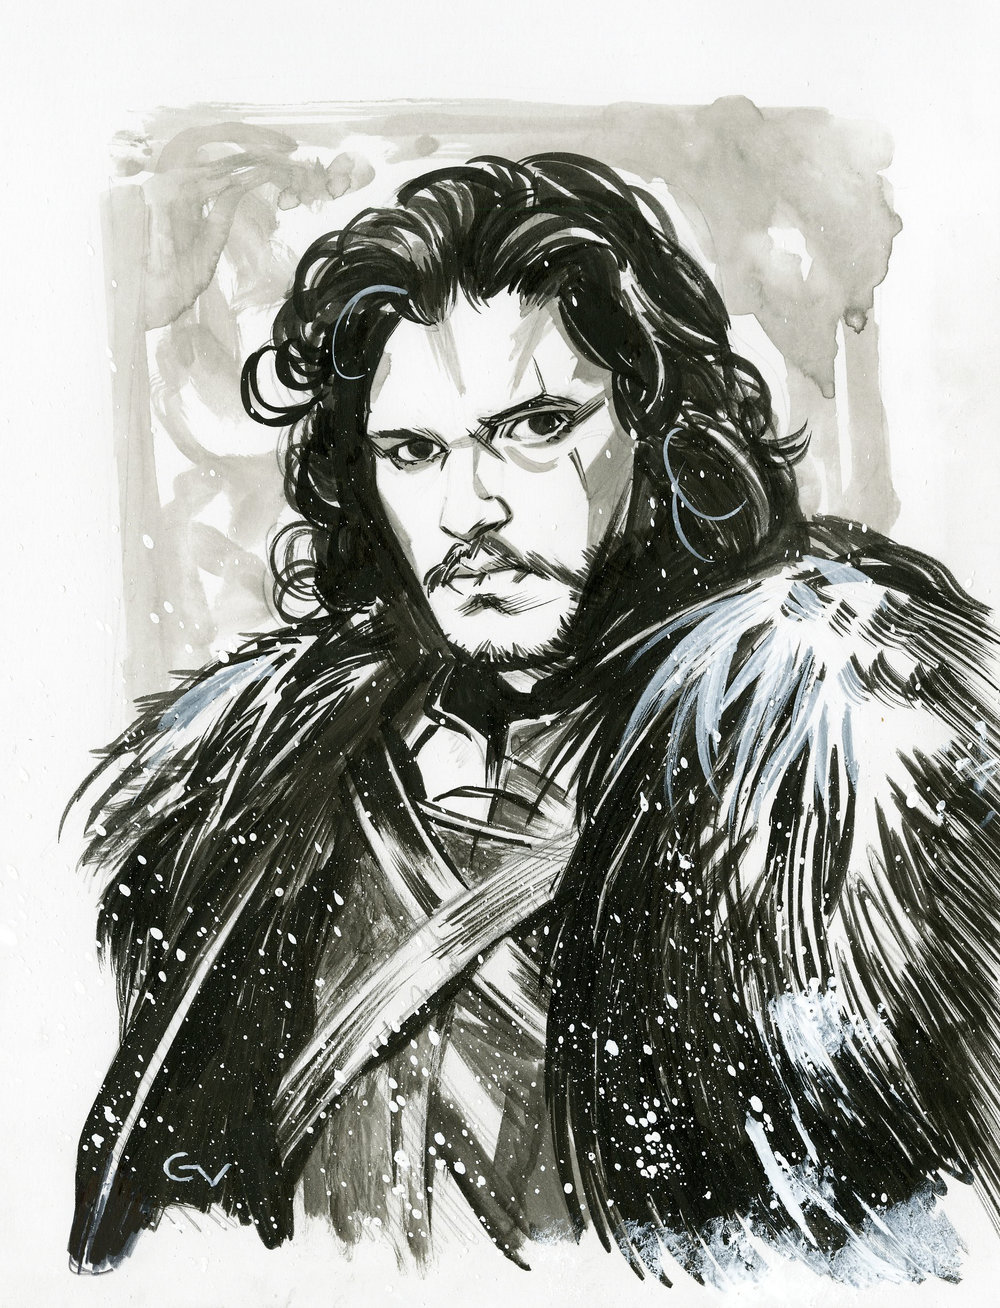 Jon Snow by Giovanni Valletta.jpg